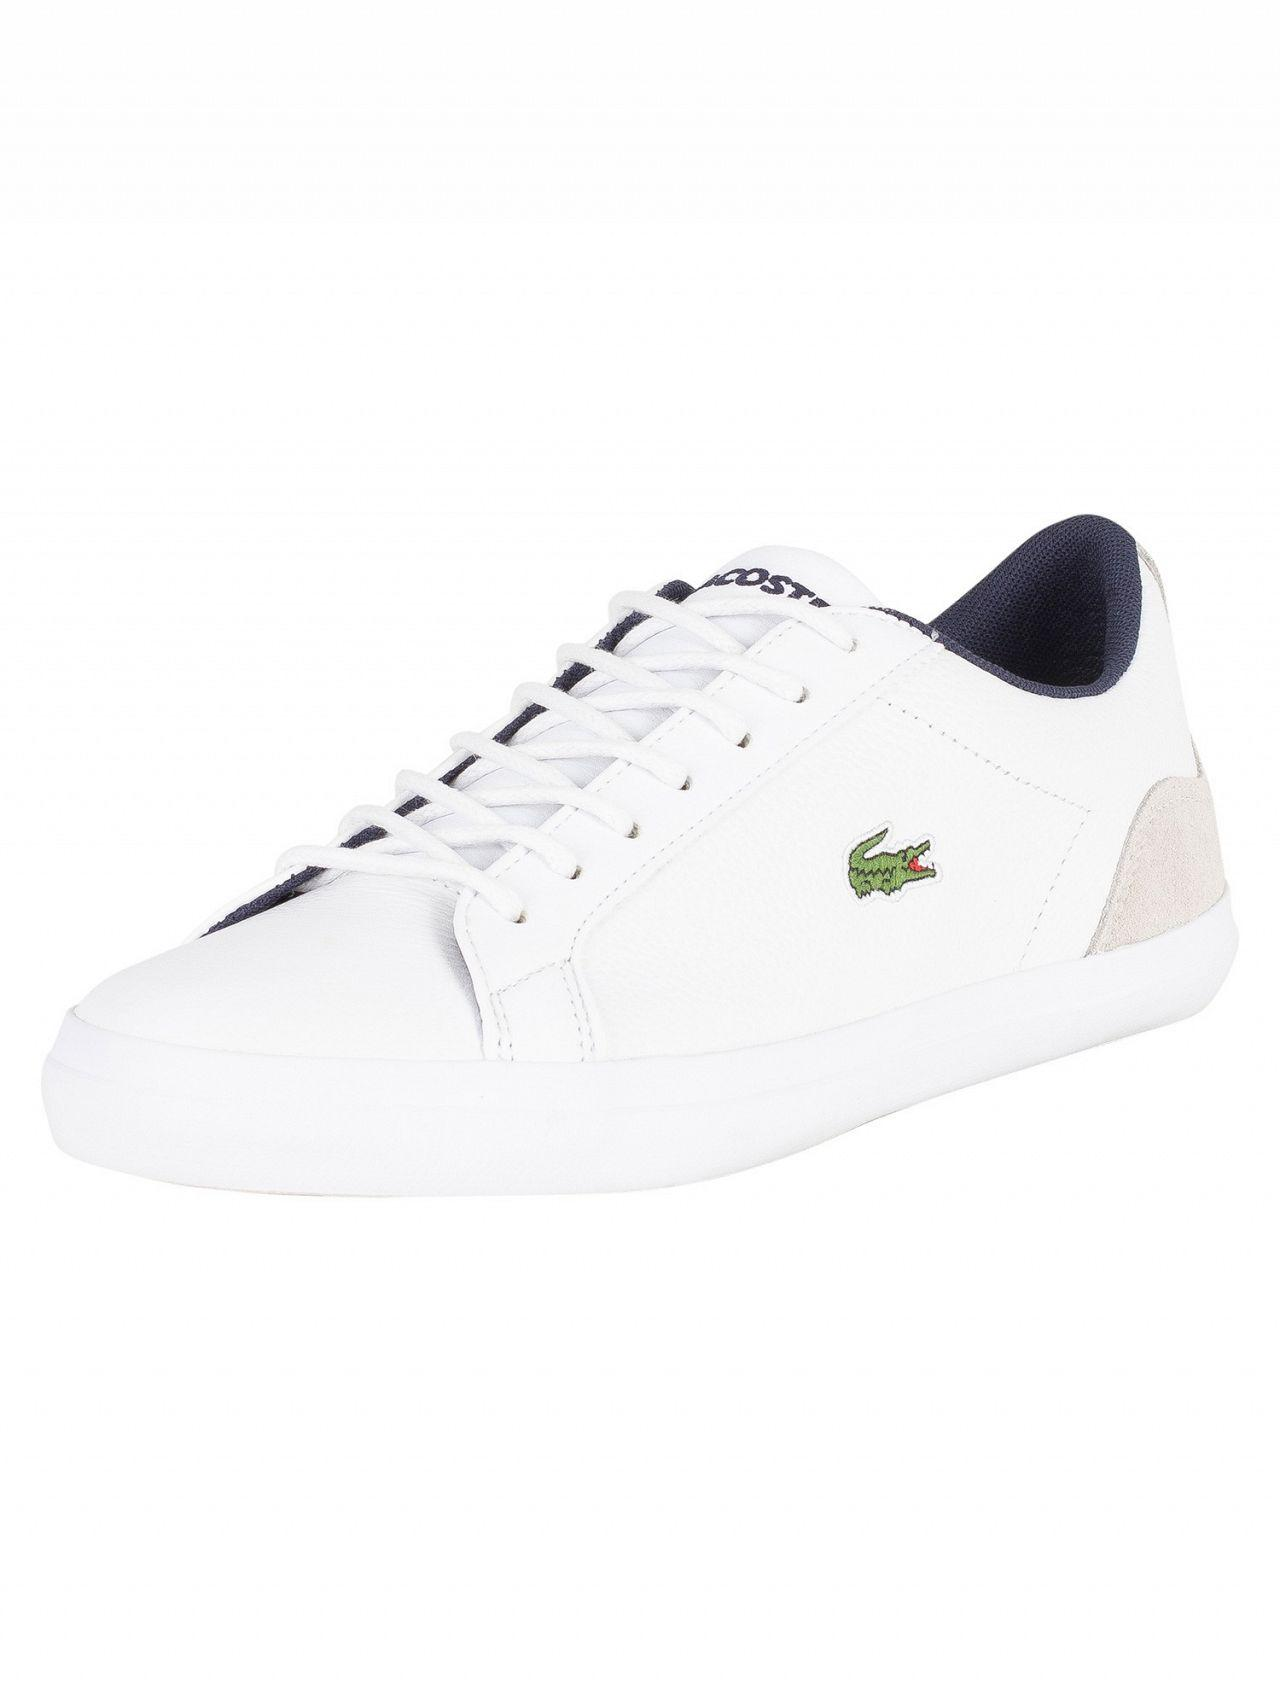 9a20e848e8a99a Lyst - Lacoste White navy Lerond 318 3 Cam Trainers in White for Men